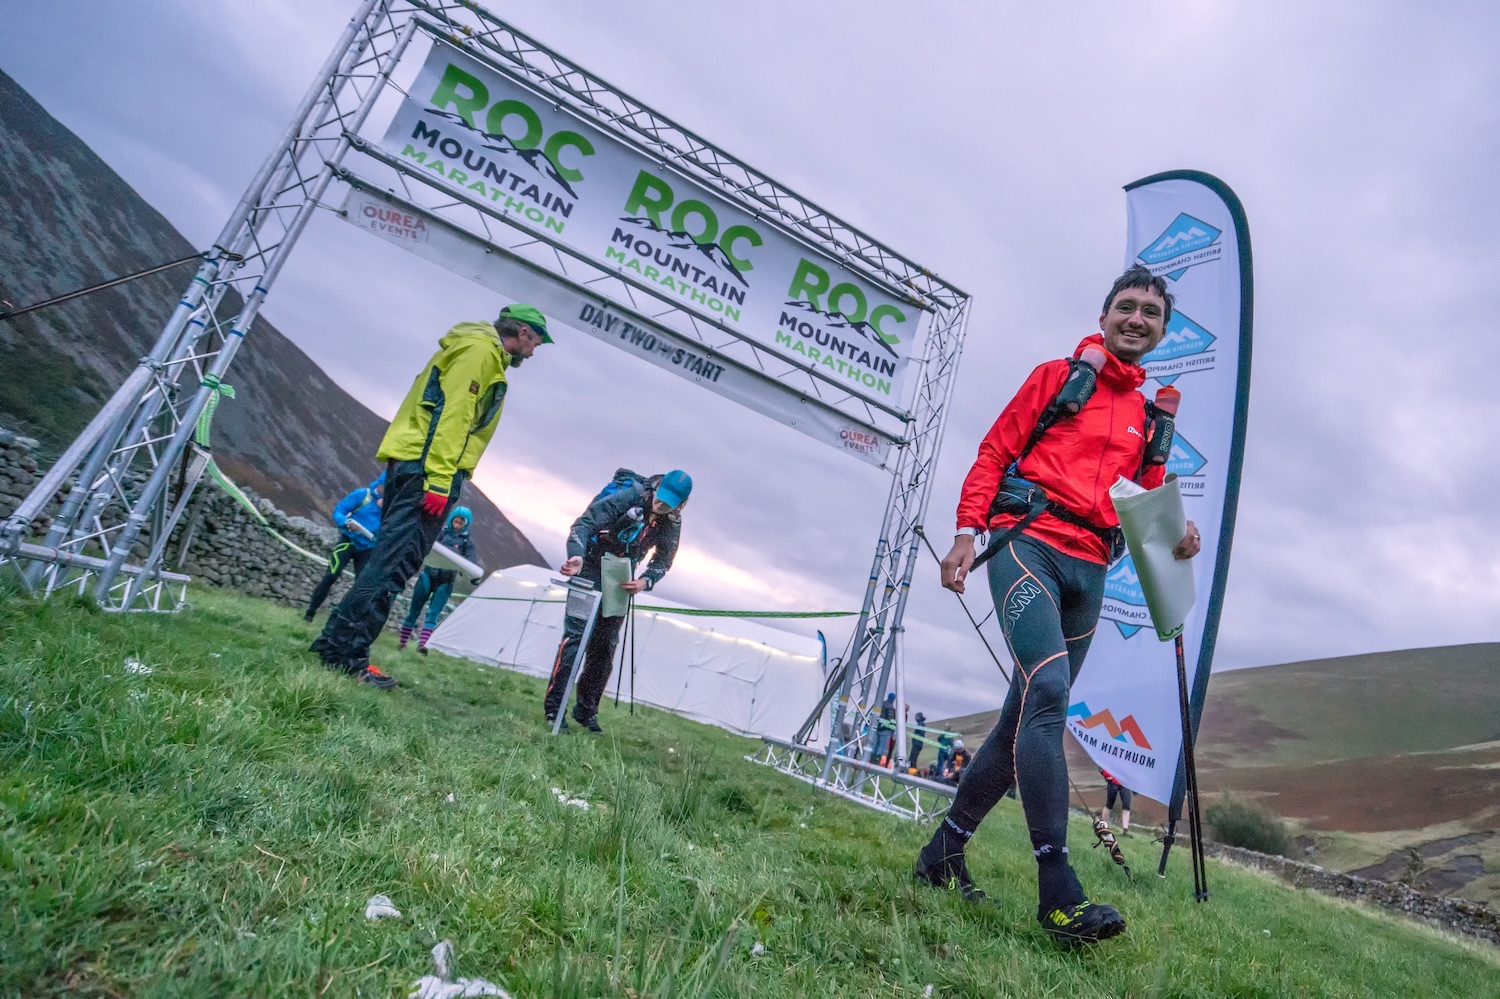 See you at the 2019 ROC Mountain Marathon this September in the Lowther Hills, Southern Uplands, Scotland! ©Steve Ashworth